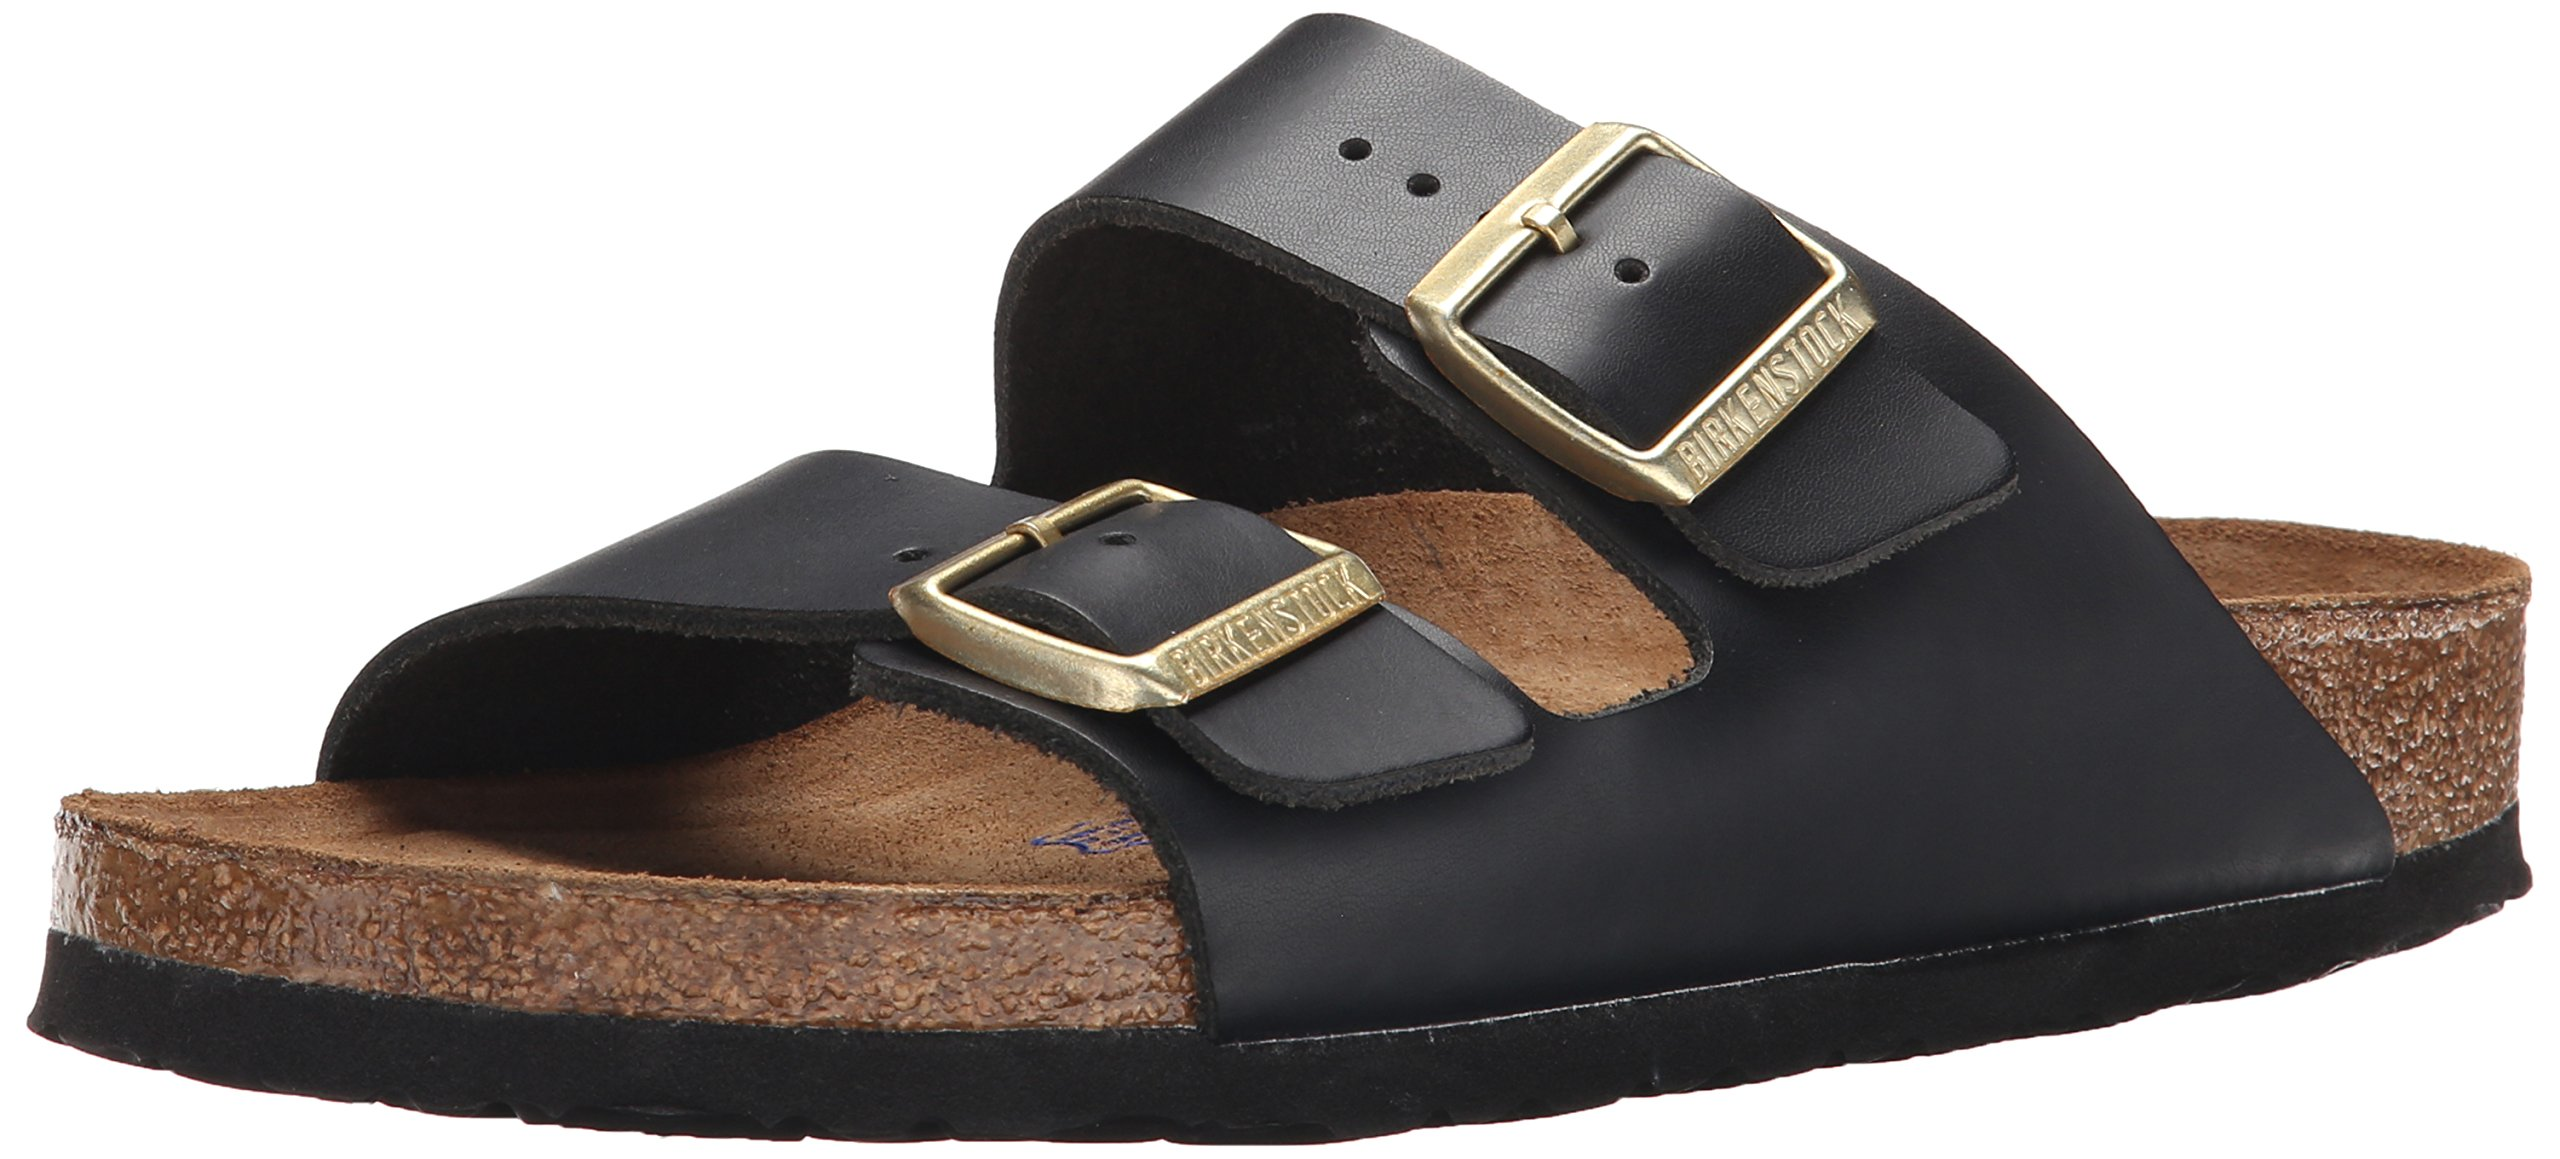 Birkenstock Unisex Arizona Hunter Black Leather Sandals - 9-9.5 2A(N) US Women/7-7.5 2A(N) US Men